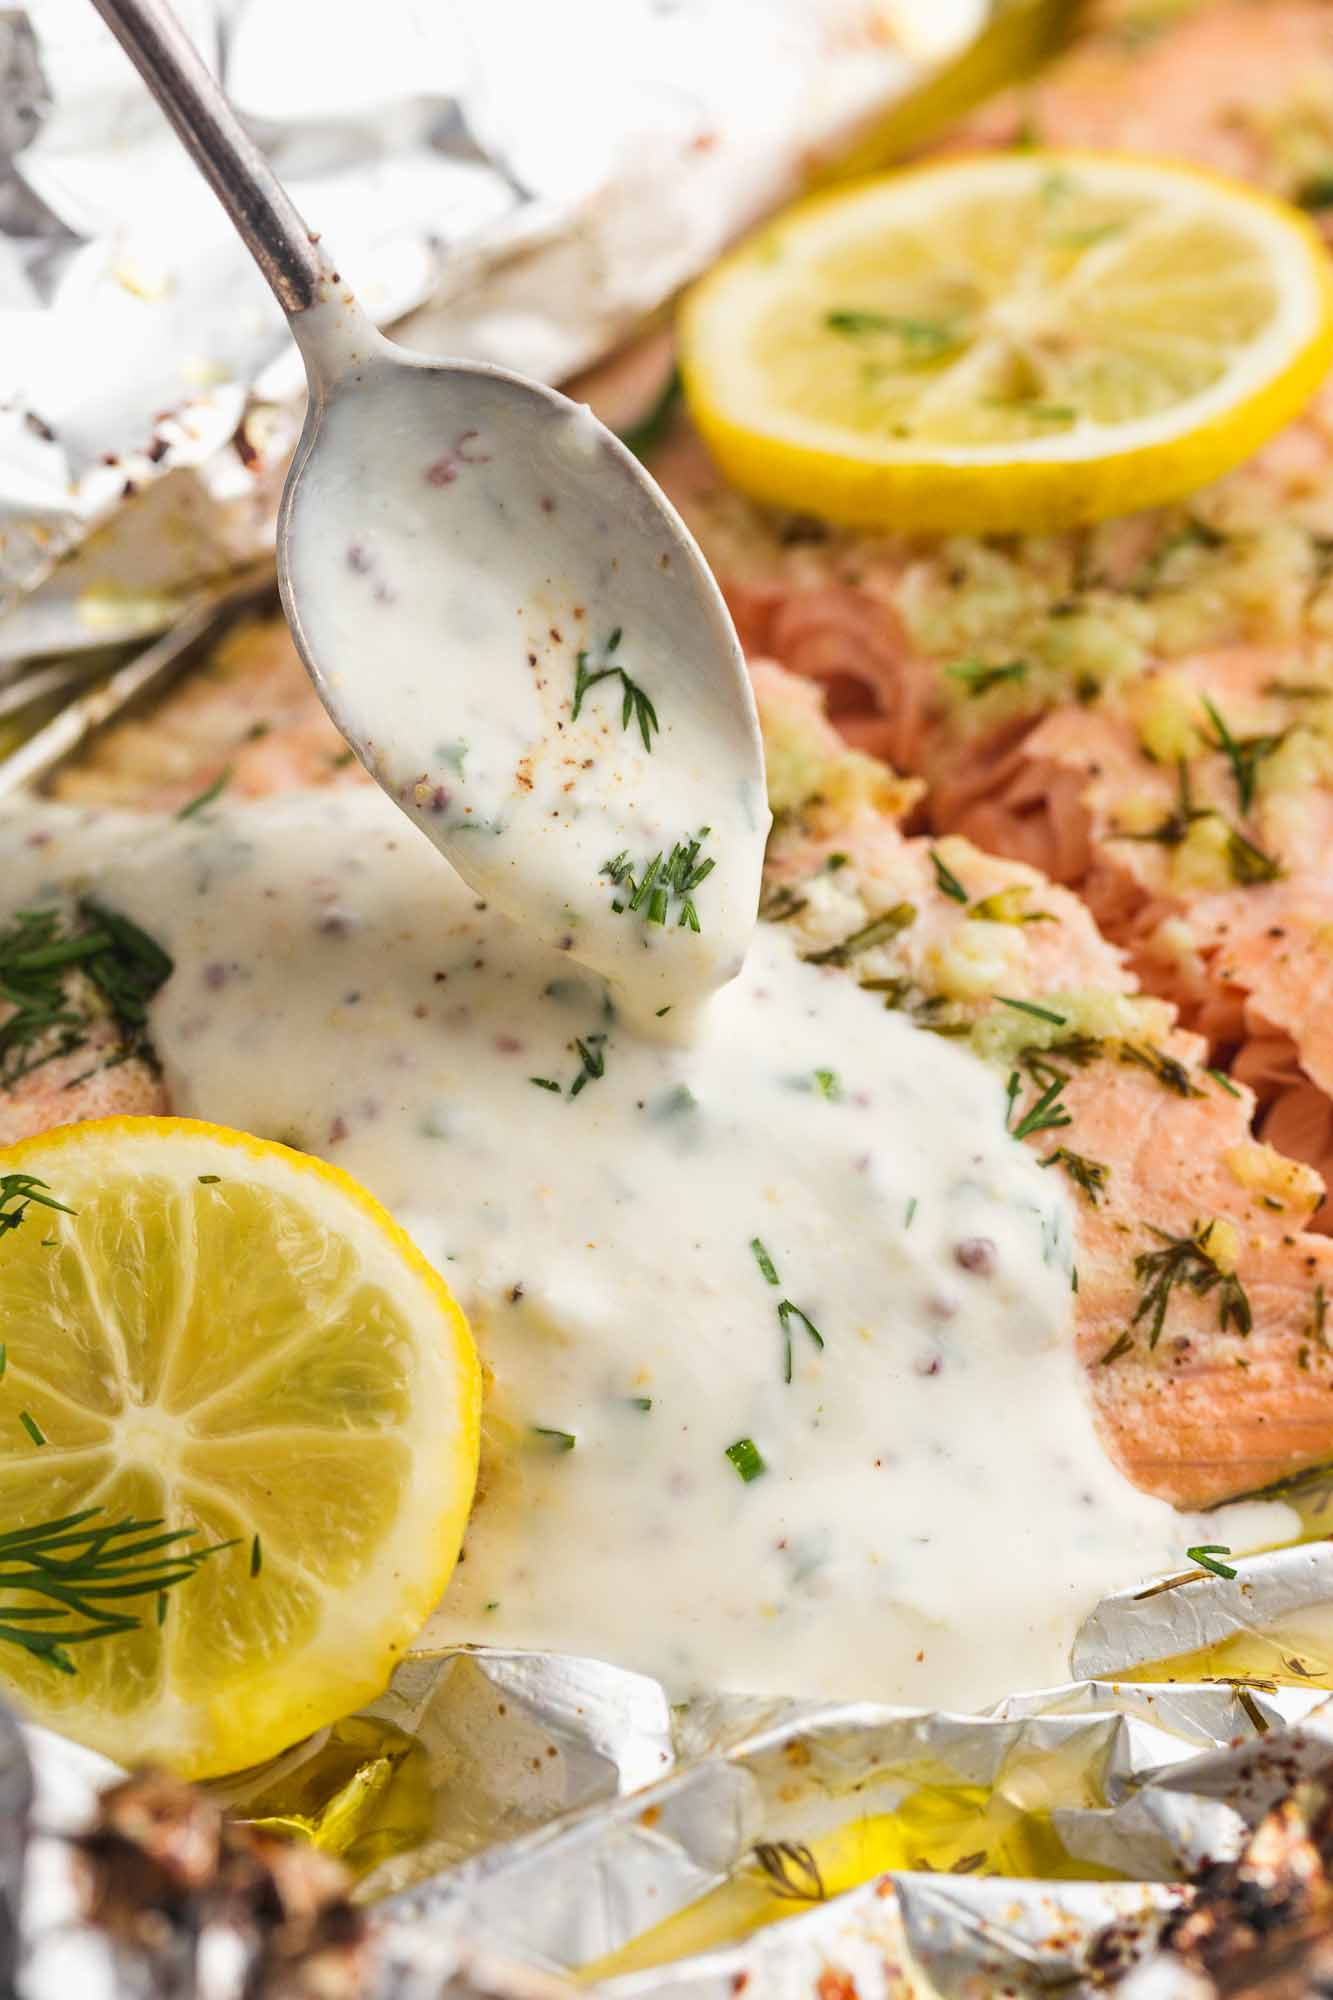 Drizzling herb cream sauce over baked salmon with a spoon.